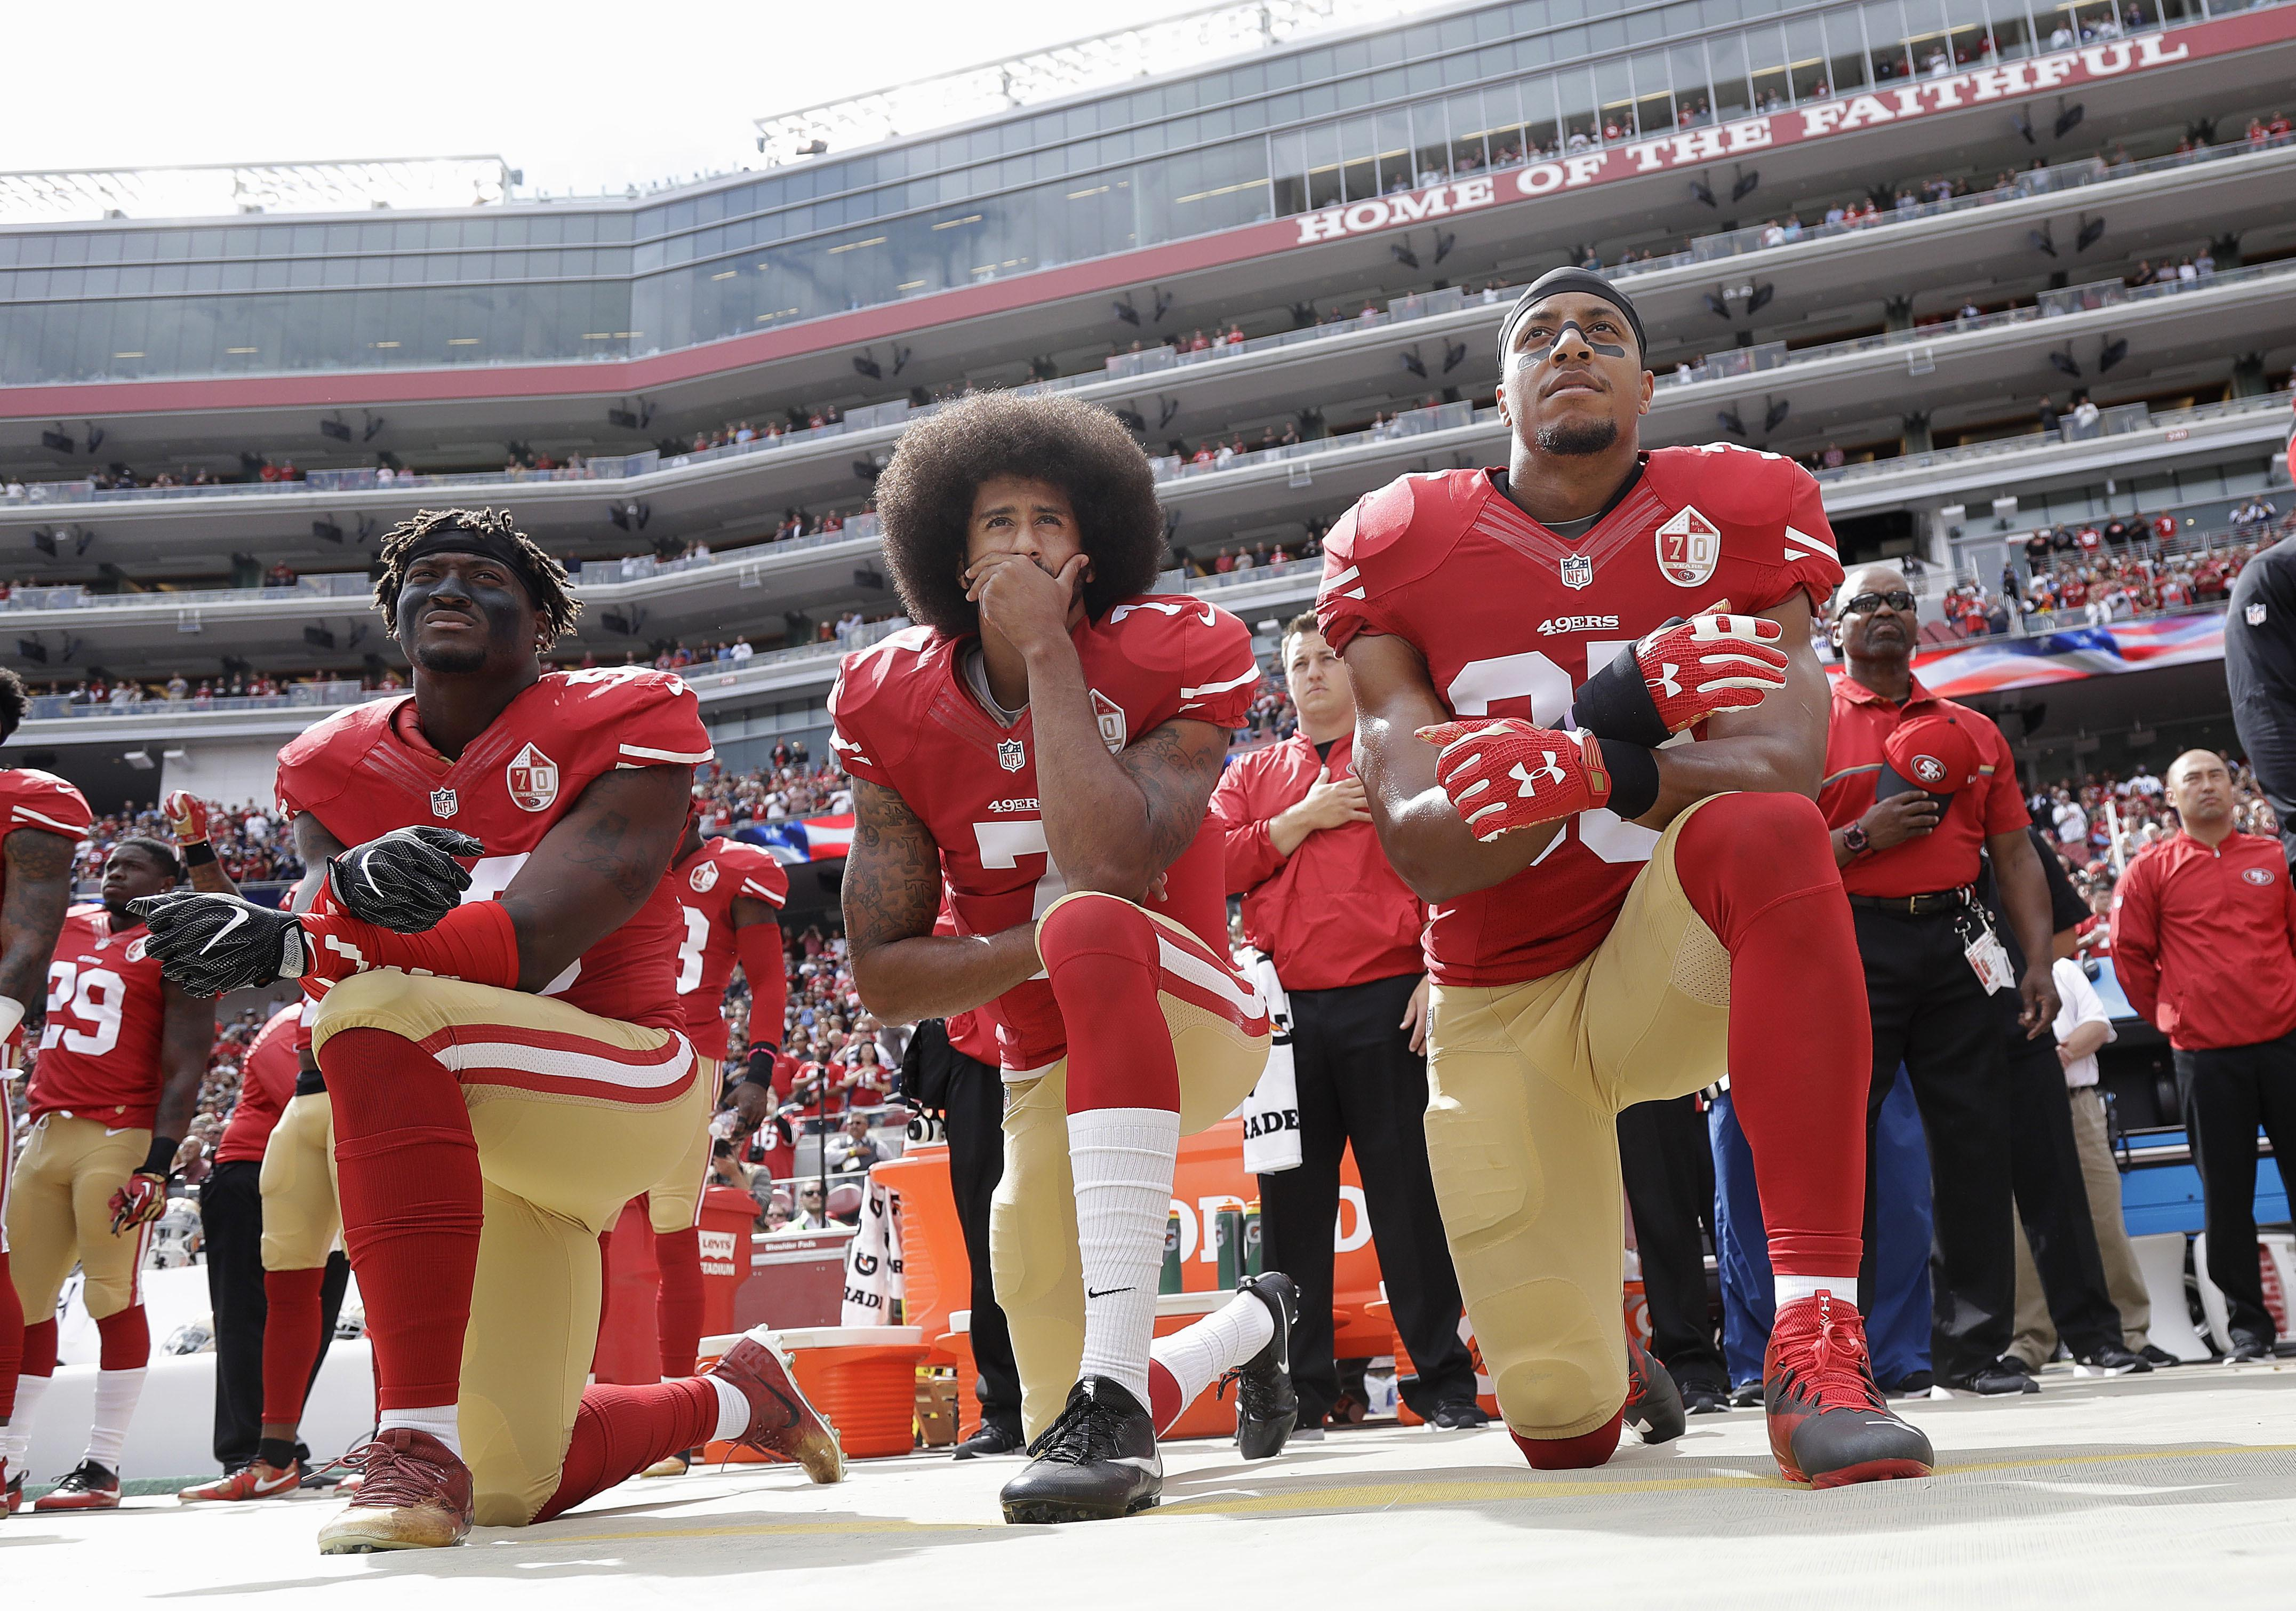 Kaepernick started the trend of NFL players taking a knee during the national anthem to protest against racial injustices in America